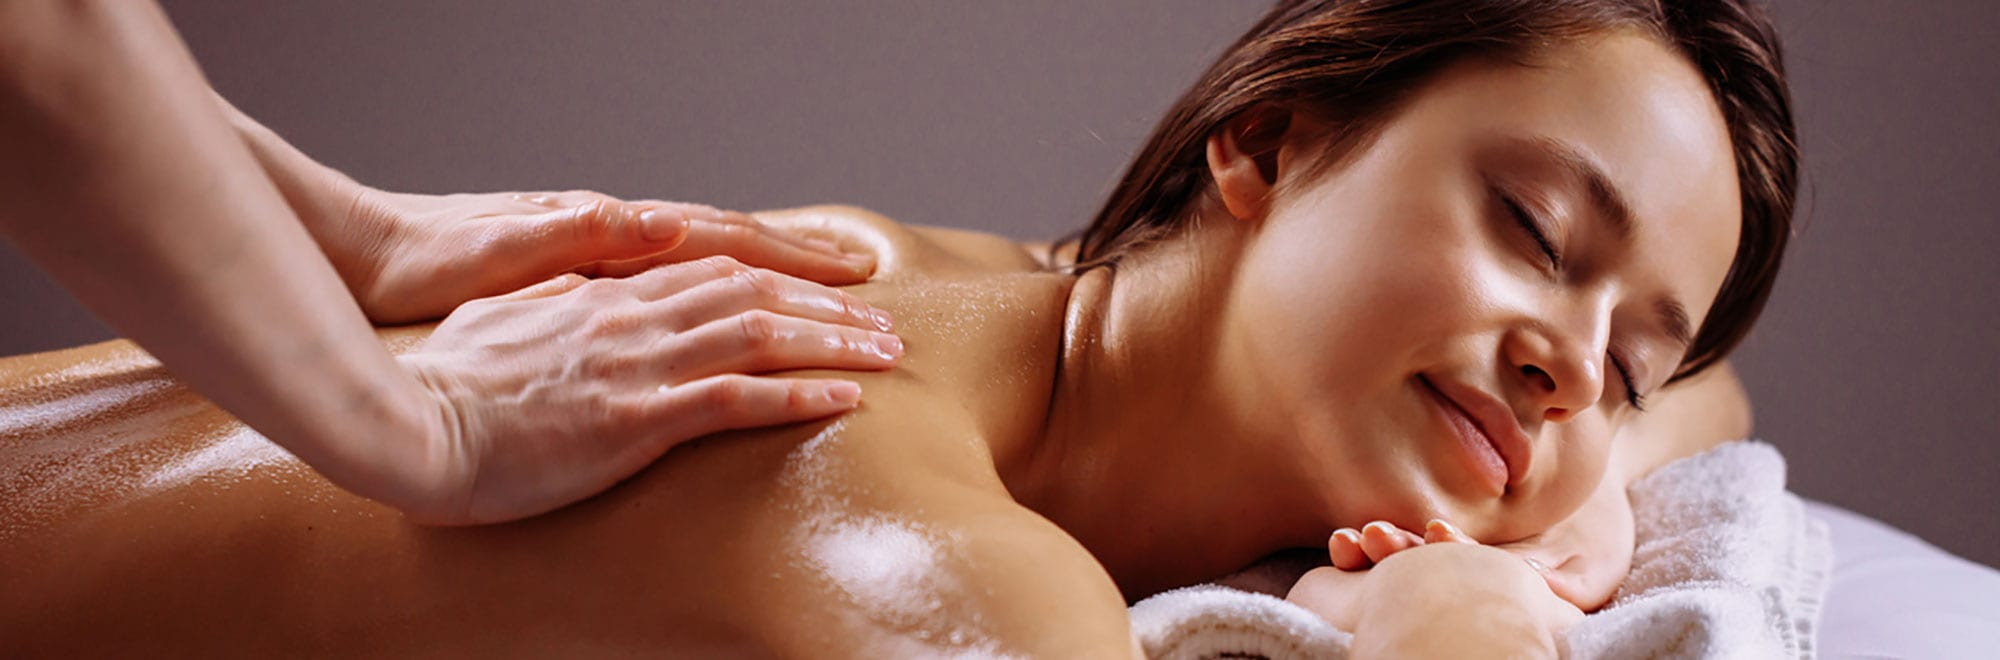 Woman Getting Back Massage - Massage Oil